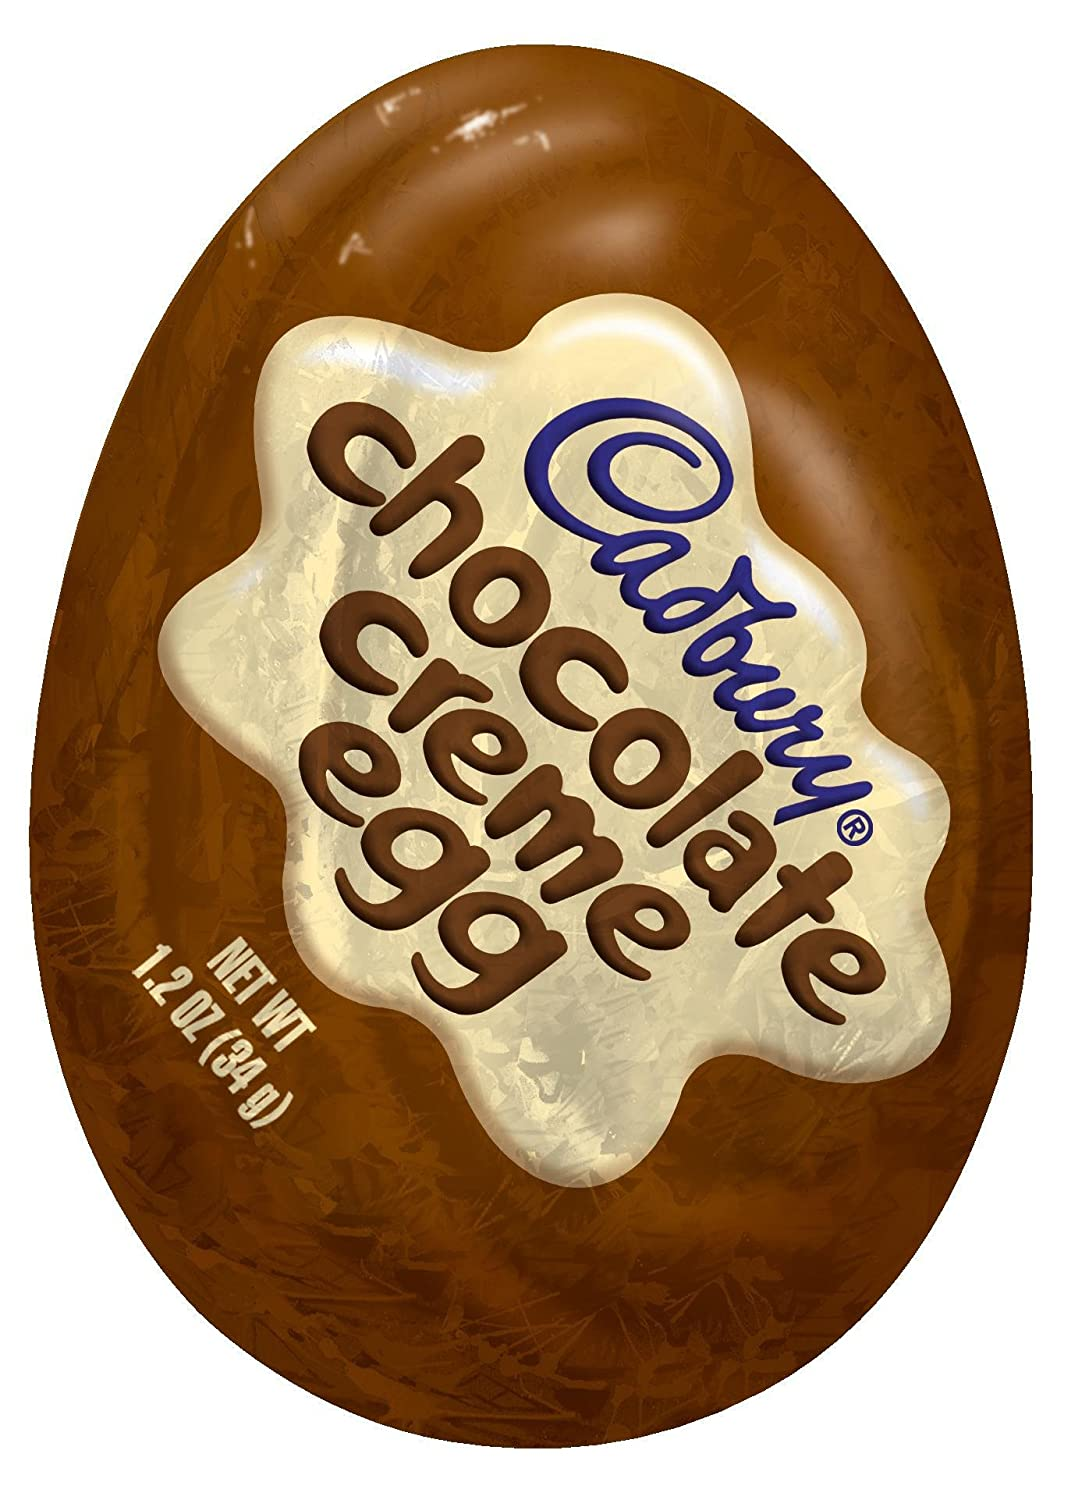 Amazon.com : Cadbury Easter Chocolate Creme Egg, 4-Count, 4.8 oz ...